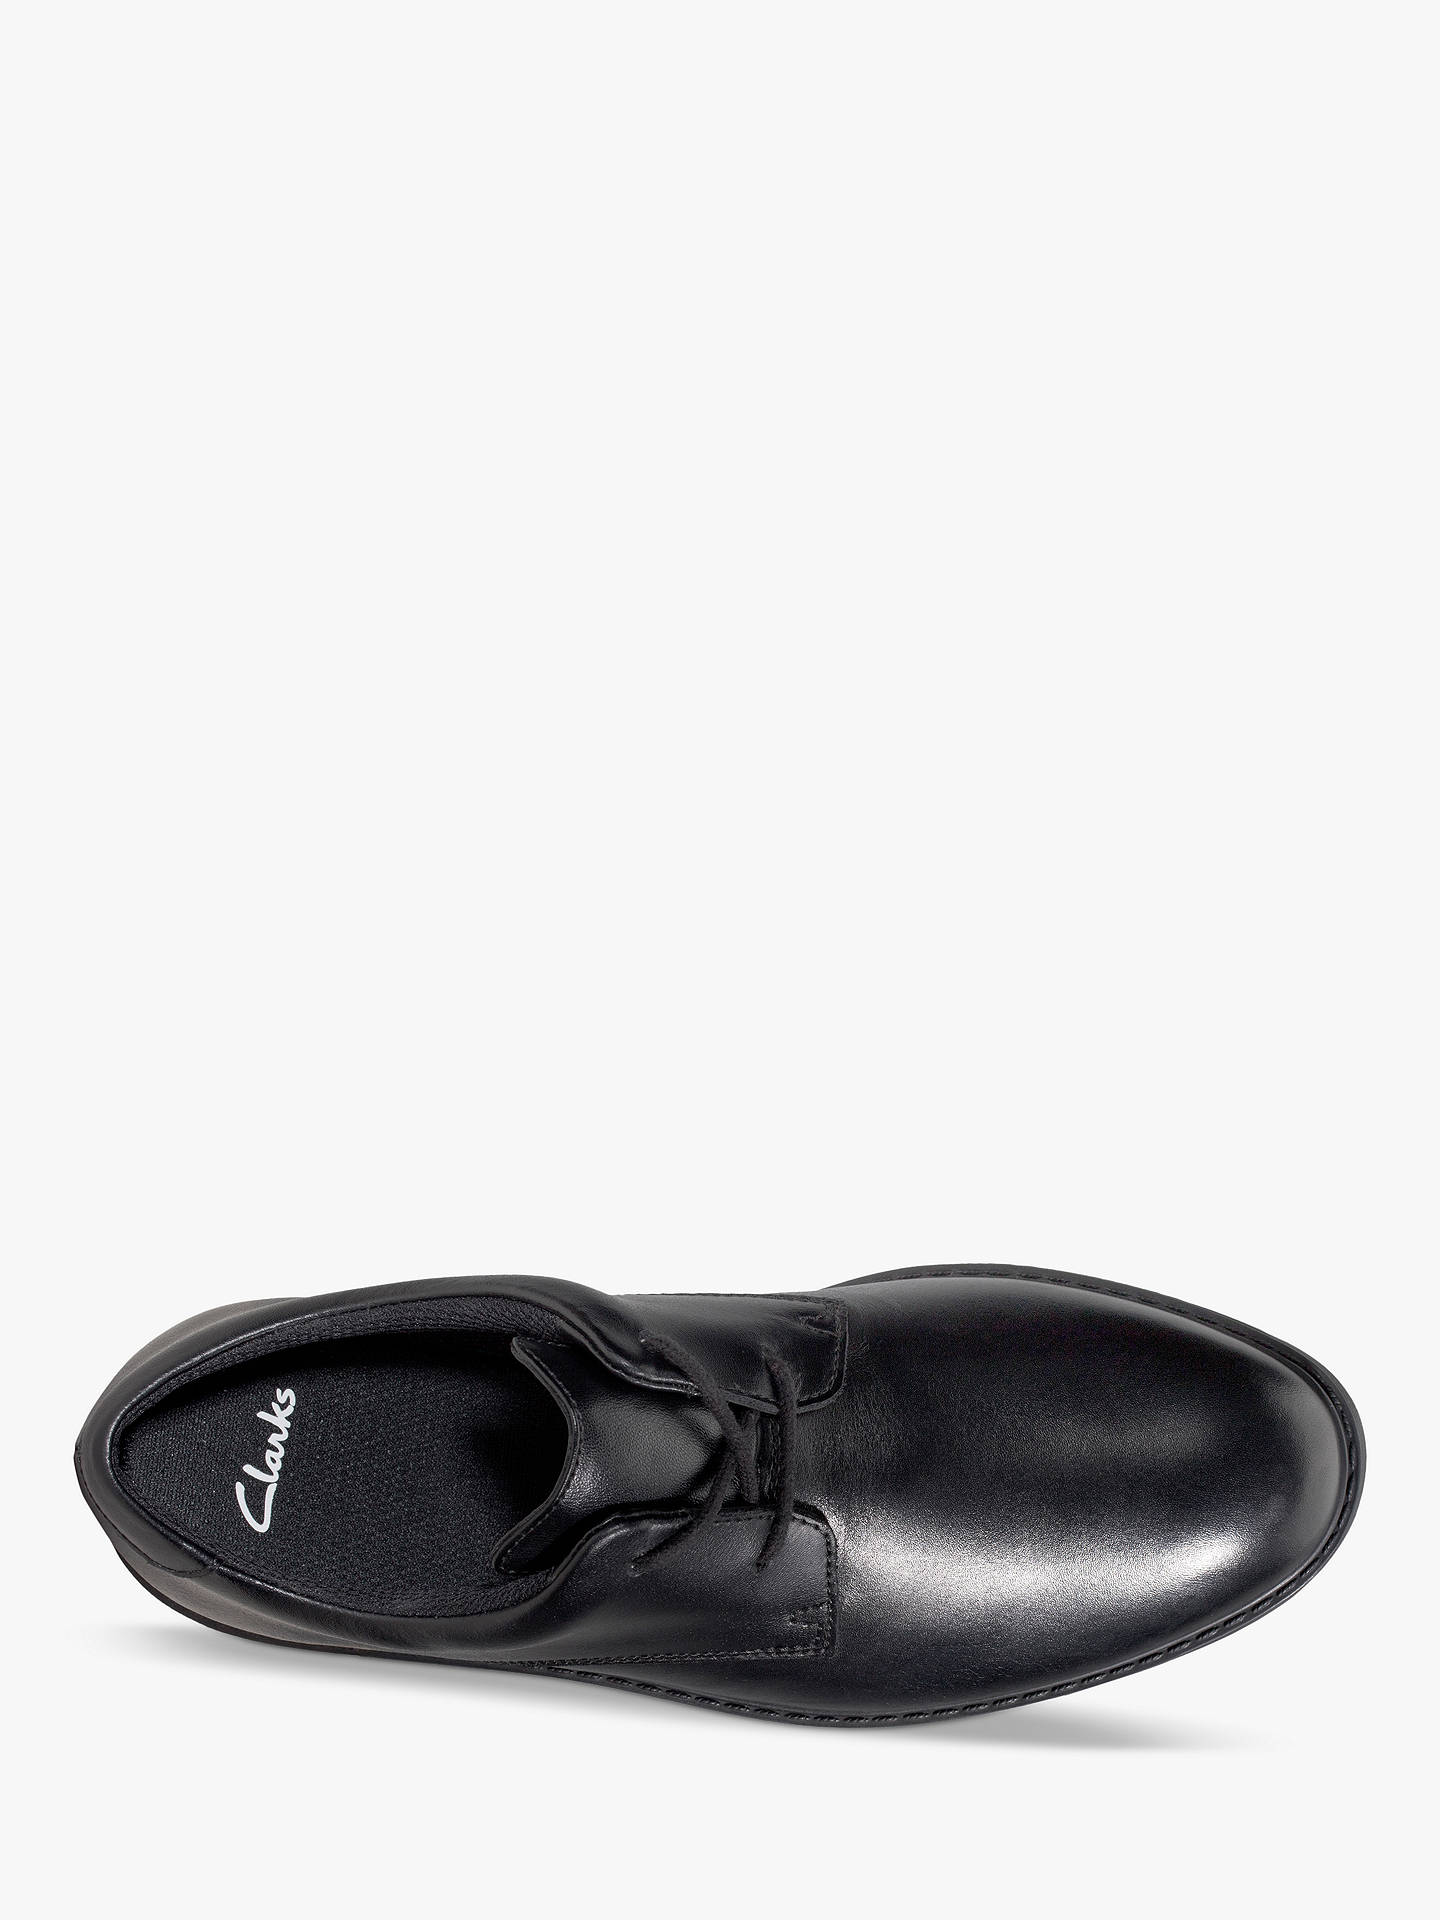 Buy Clarks Children's Scala Loop Youth Shoes, Black, 7.5F Online at johnlewis.com